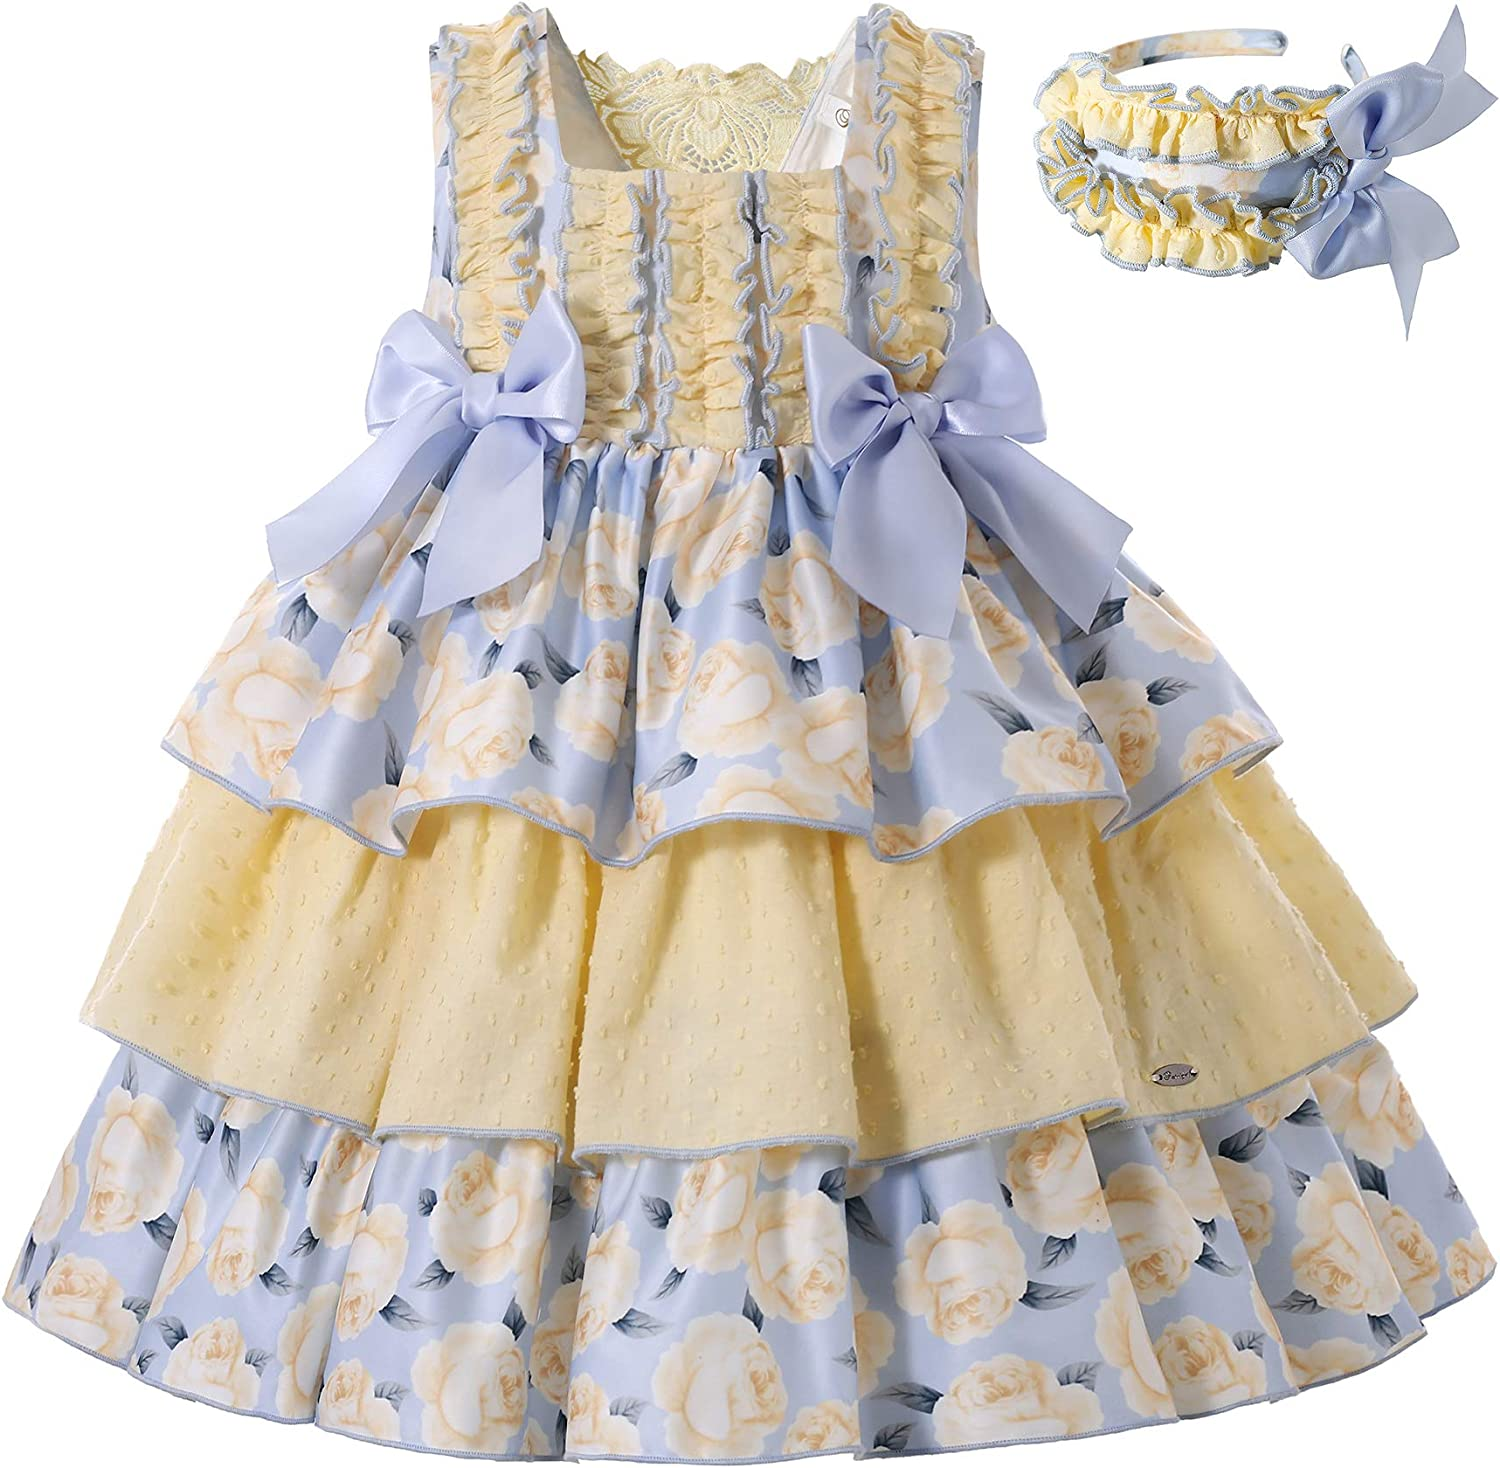 Pettigirl Girl Summer Yellow Cheap mail order specialty store Ceremony Quantity limited Sleeveless Vintage Floral